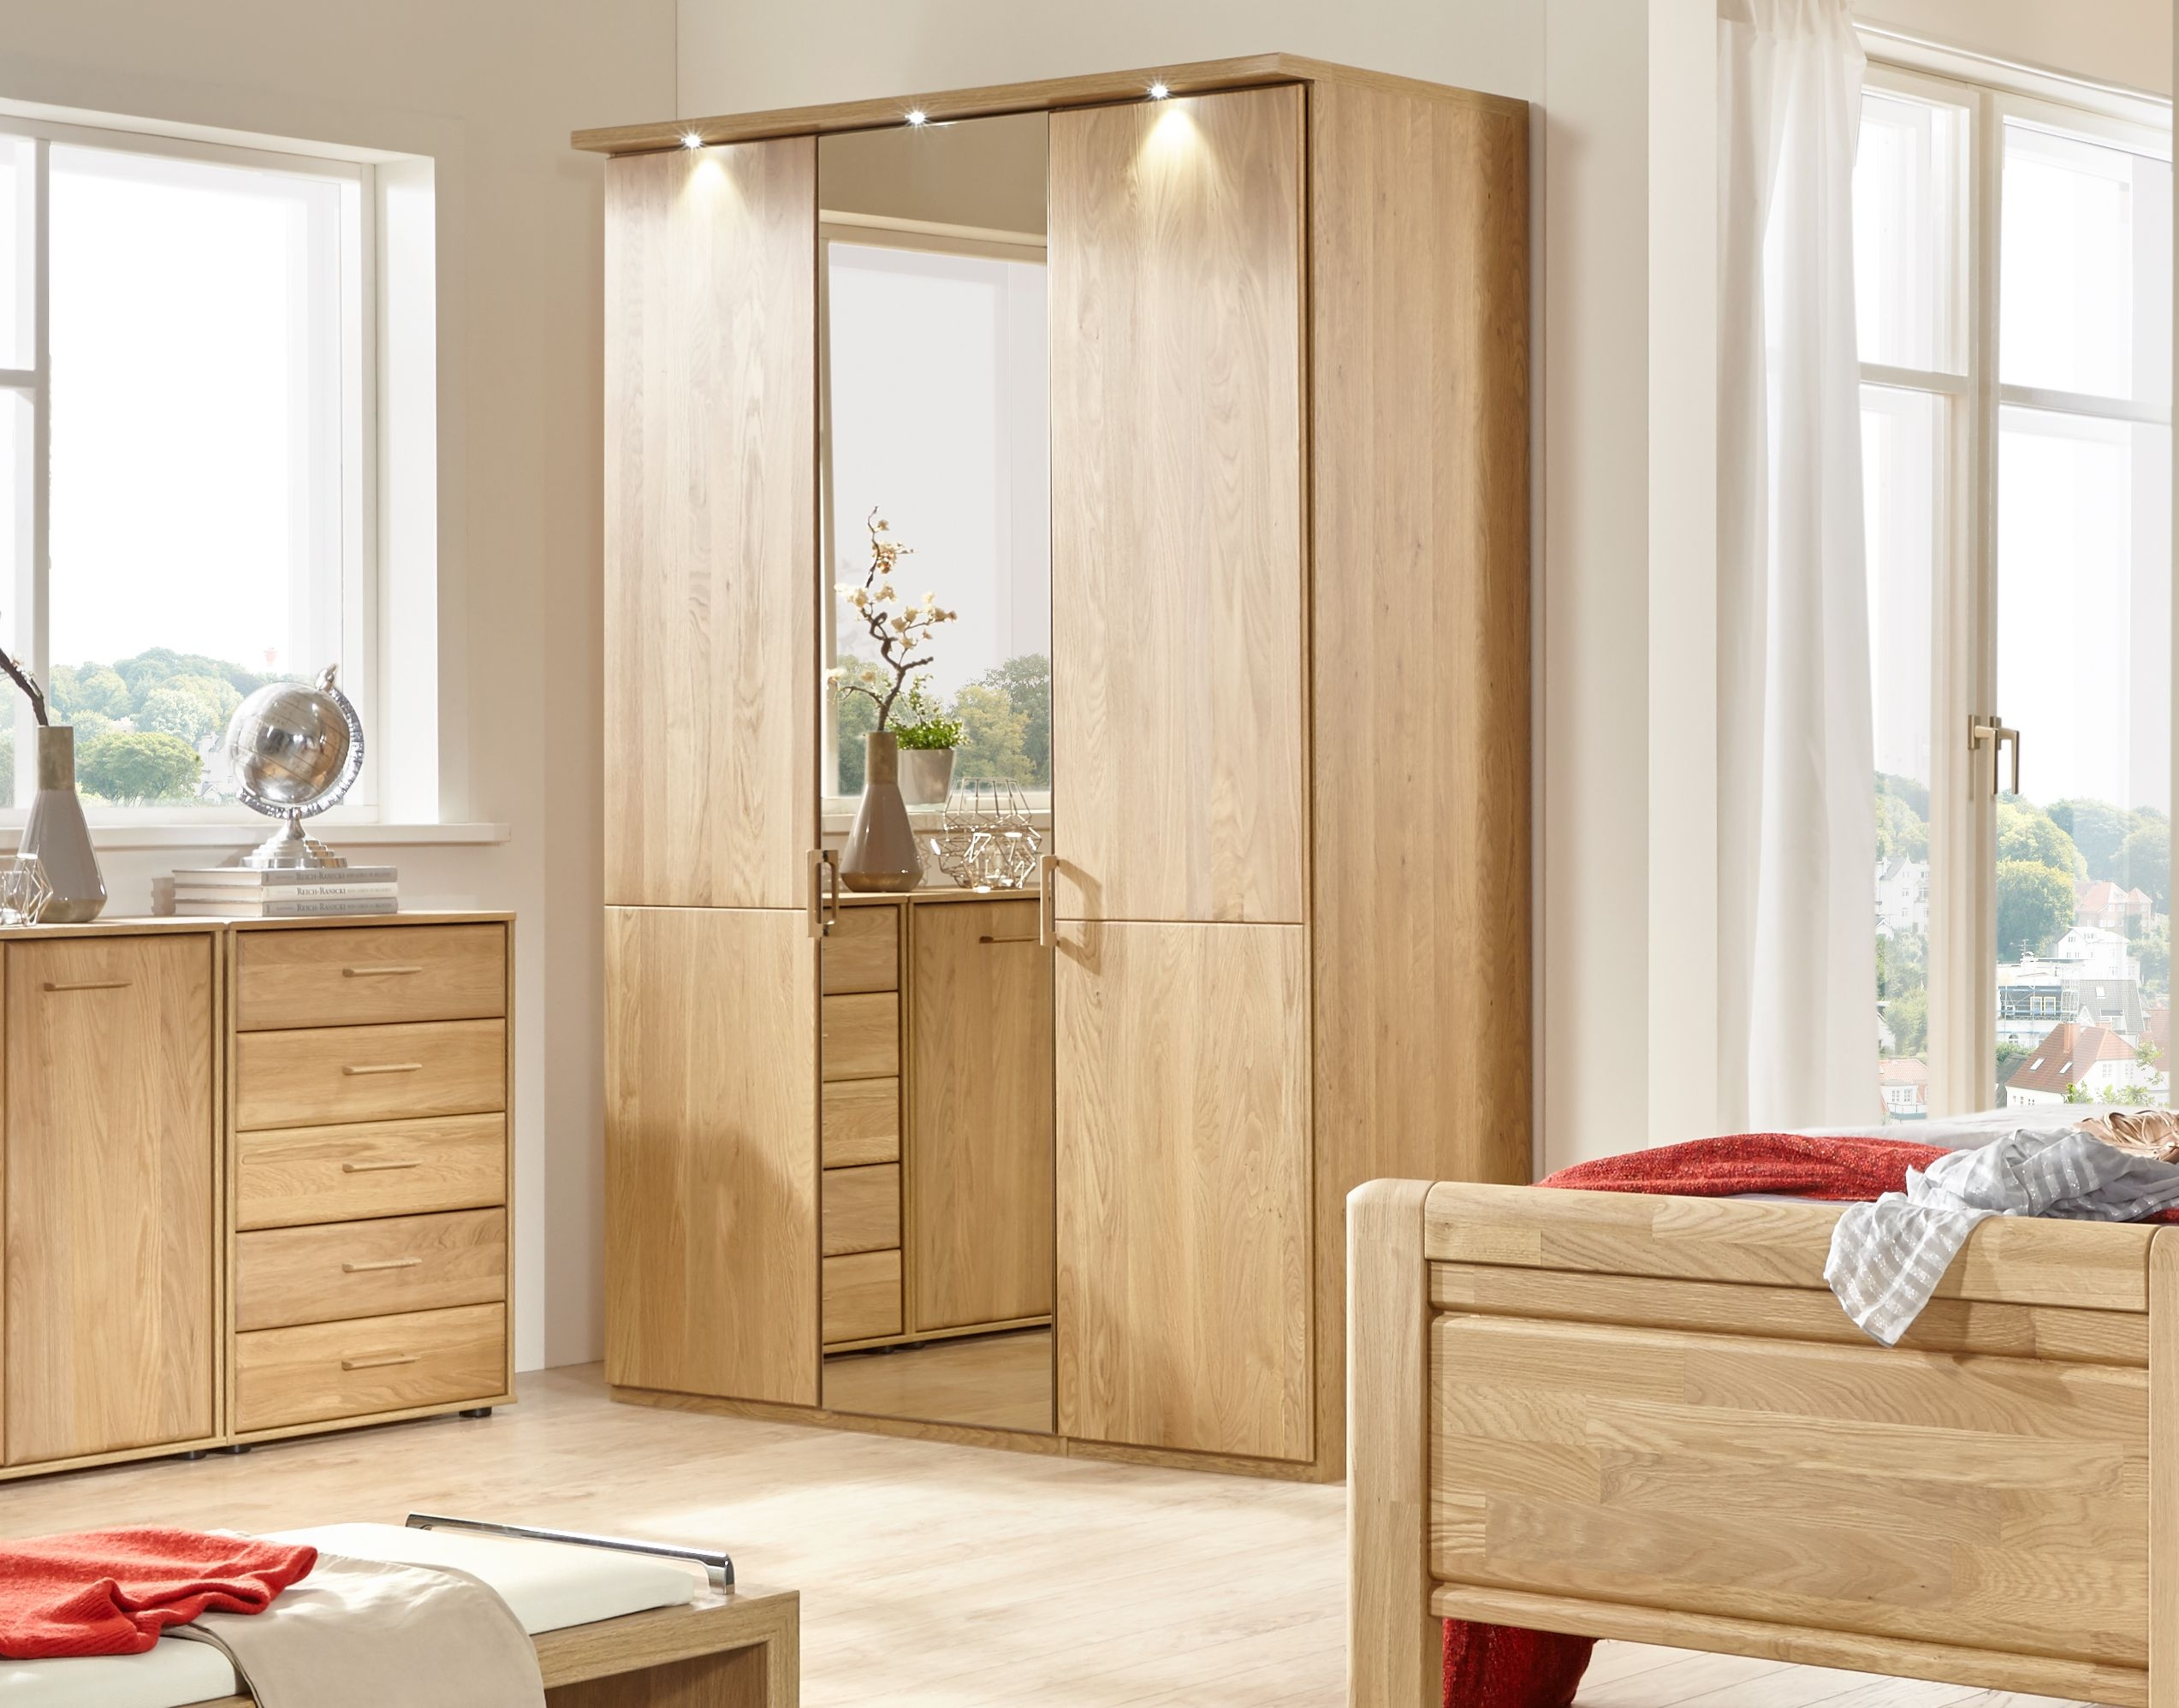 Wiemann Lido 7 Door 5 Mirror Wardrobe in Oak - W 350cm